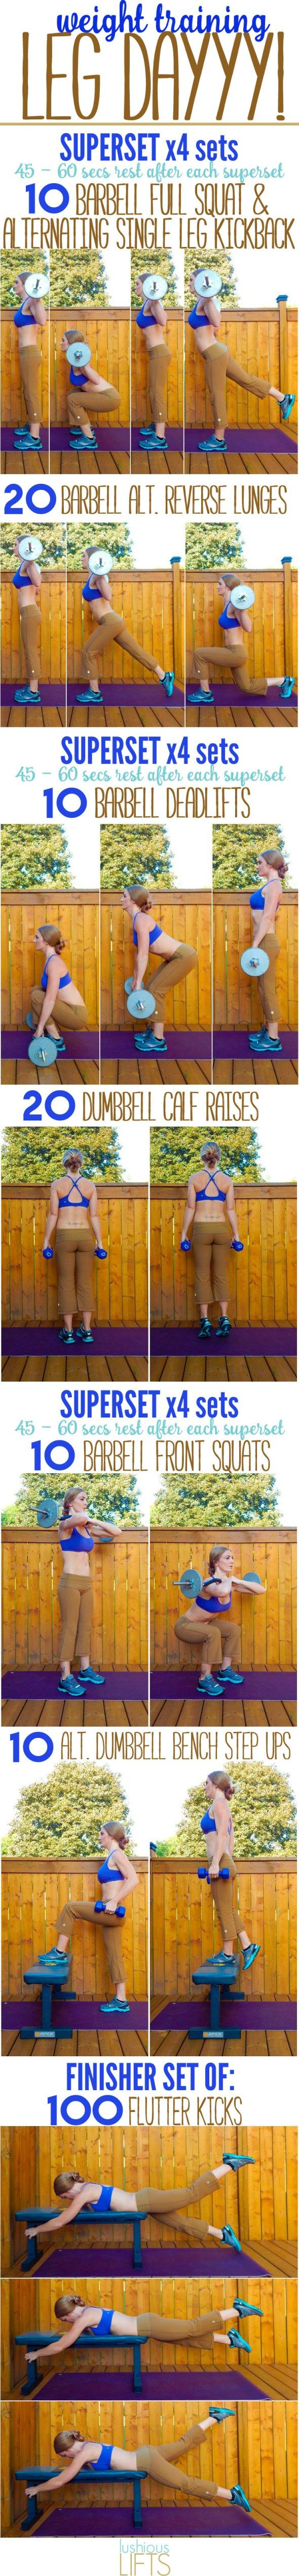 Leg supersets with a barbell. (This blogger has a variety of good workout posts with GIFs of the exercises.)